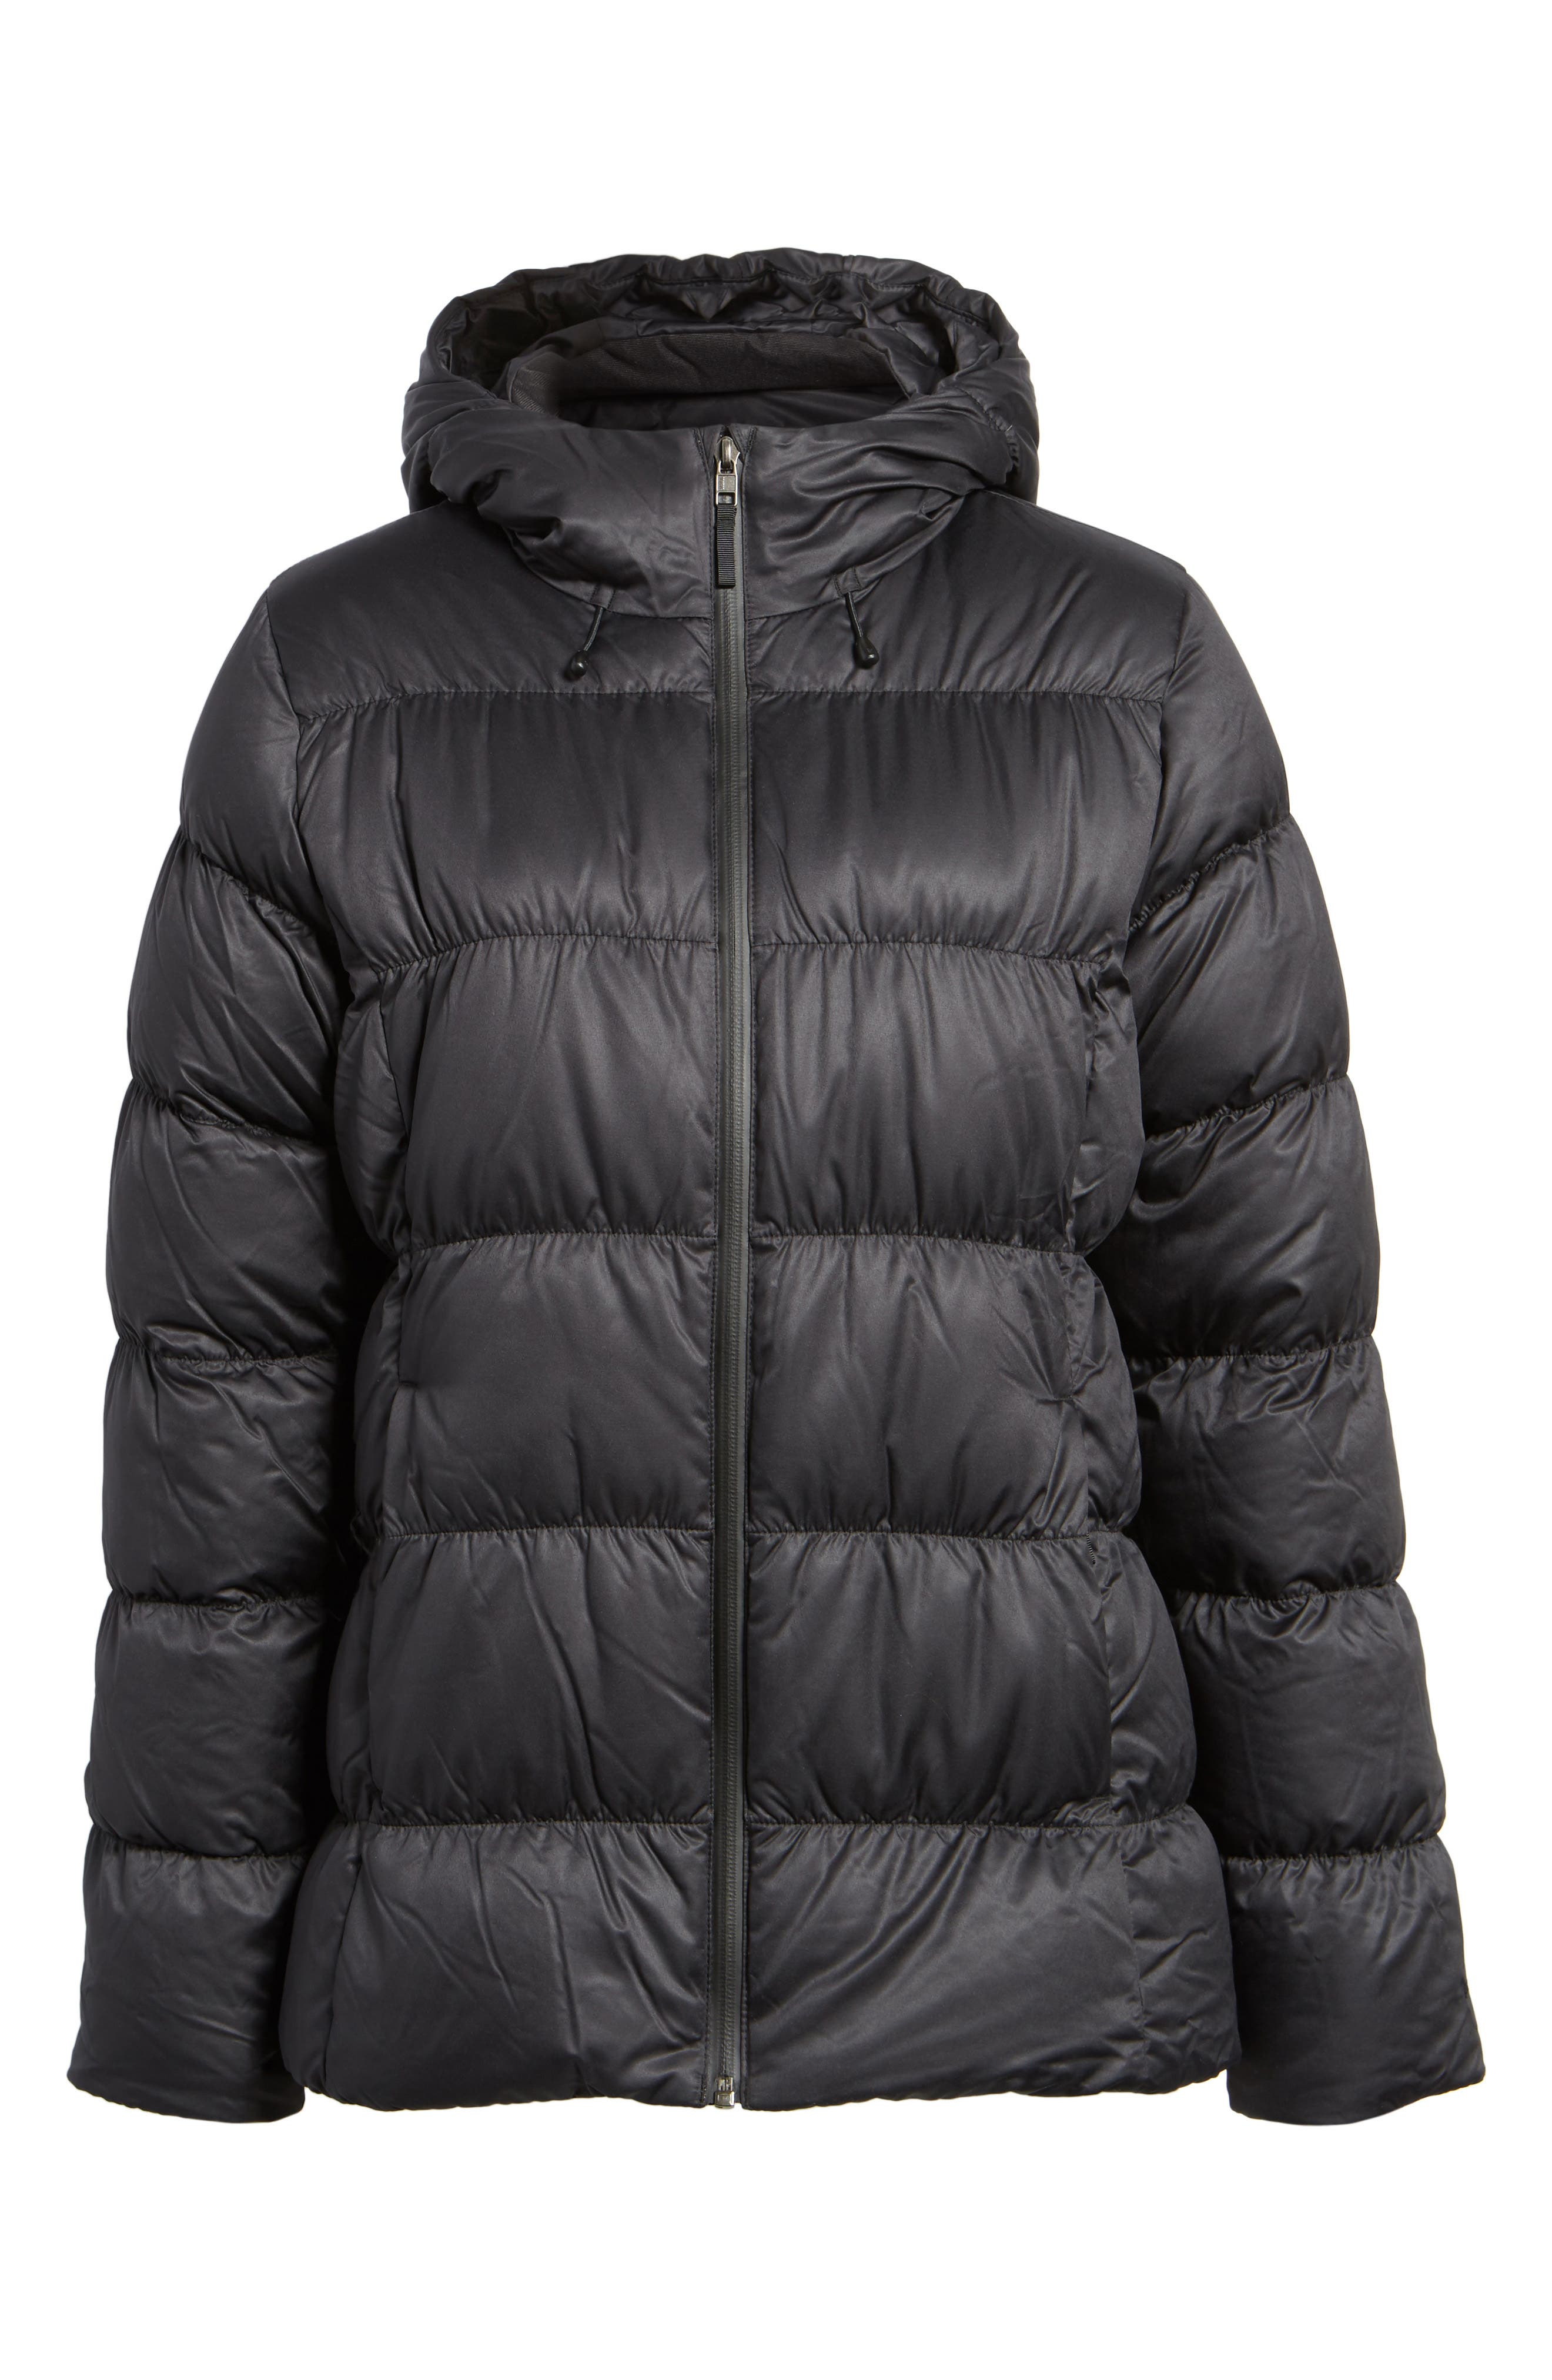 Downtown Waterproof 600-Fill Power Down Jacket,                             Alternate thumbnail 7, color,                             Black